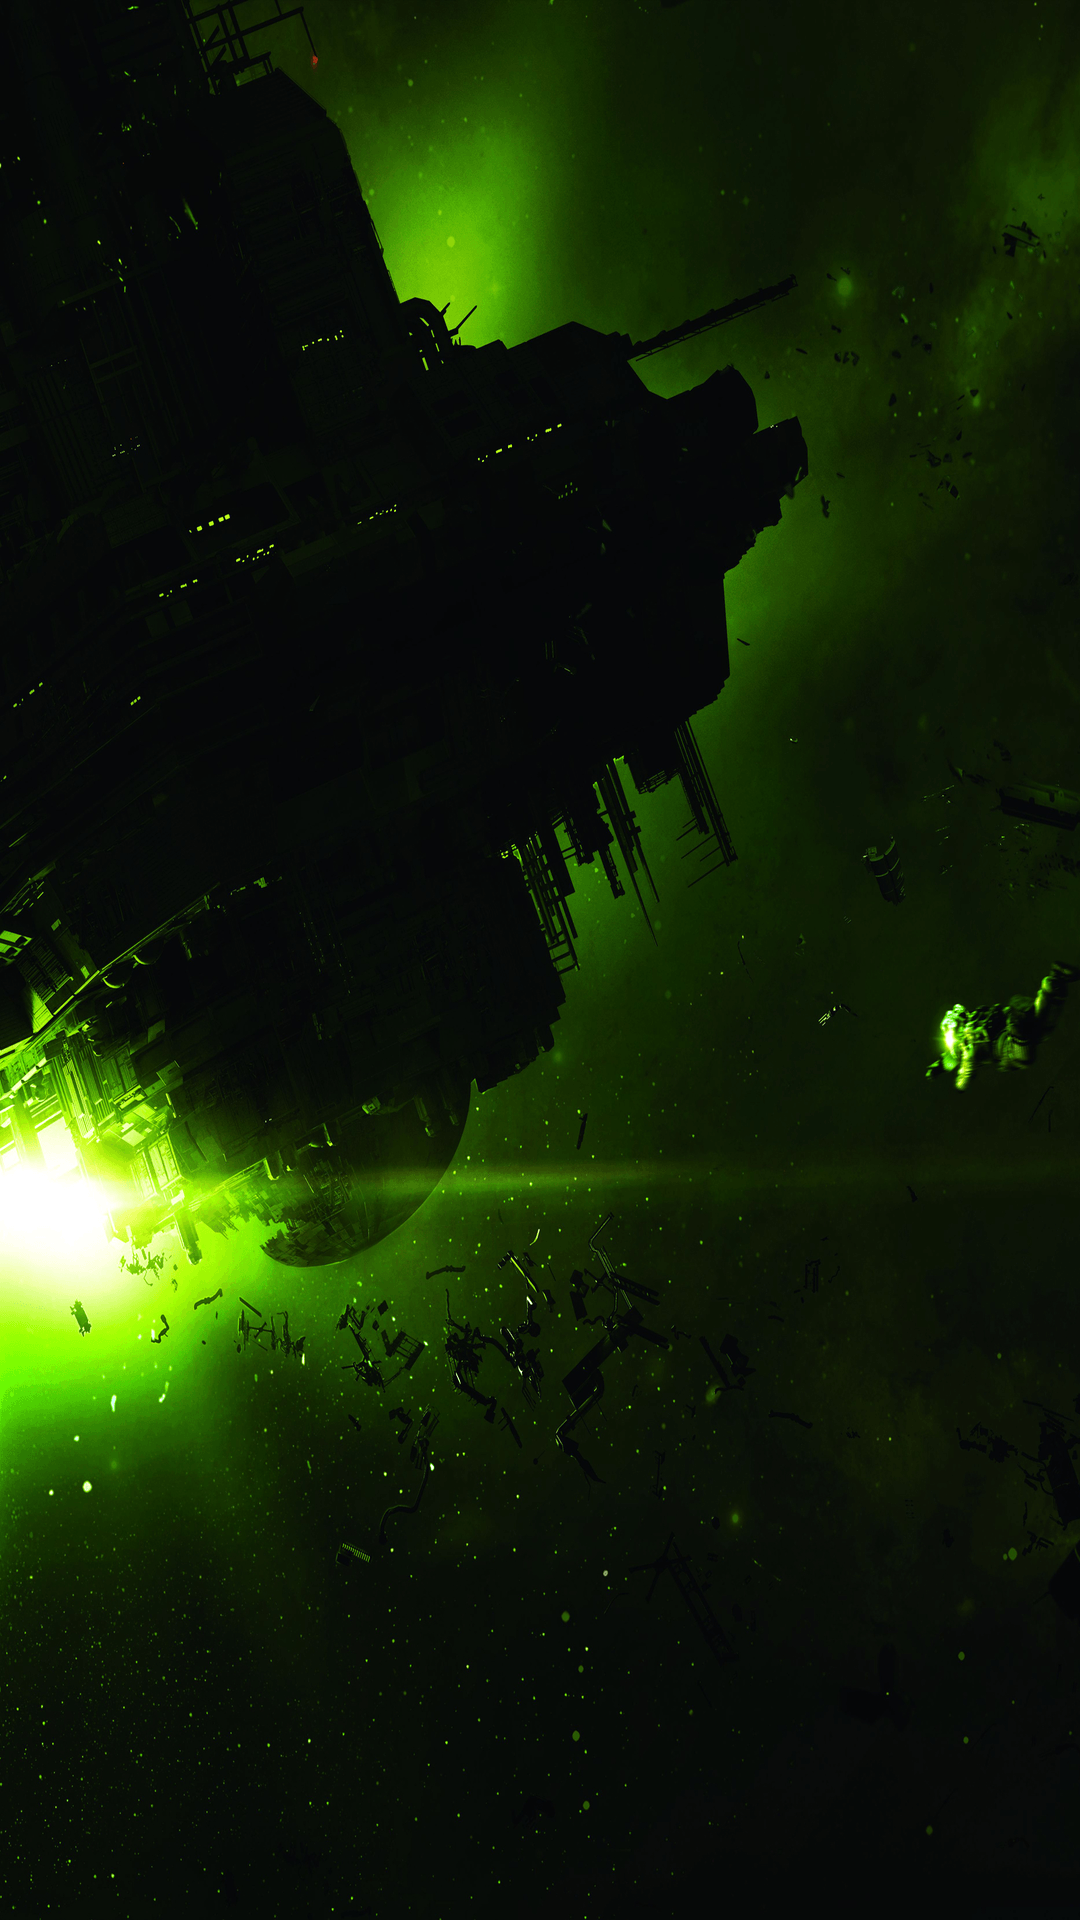 Pin By Steven Thompson On Alien In 2020 Alien Isolation Alien Iphone Wallpaper Alien